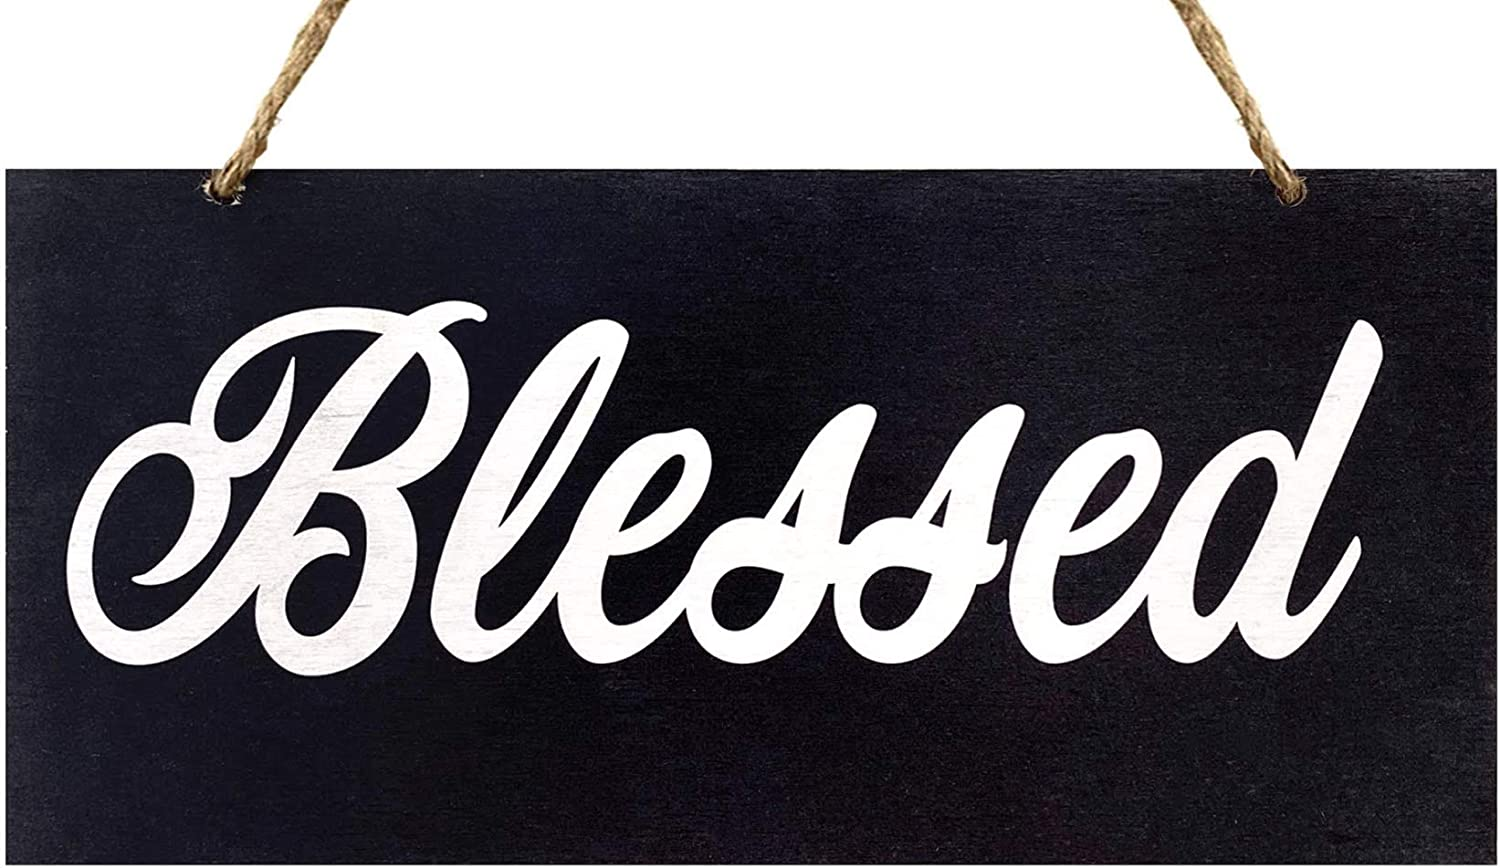 JennyGems   Blessed Wood Script Sign   Scripted Word Art   Statement Piece for Interior Decorating   Home Decor and Design   Home Trends   Inspirational Wood Signs   Made in USA (Black)